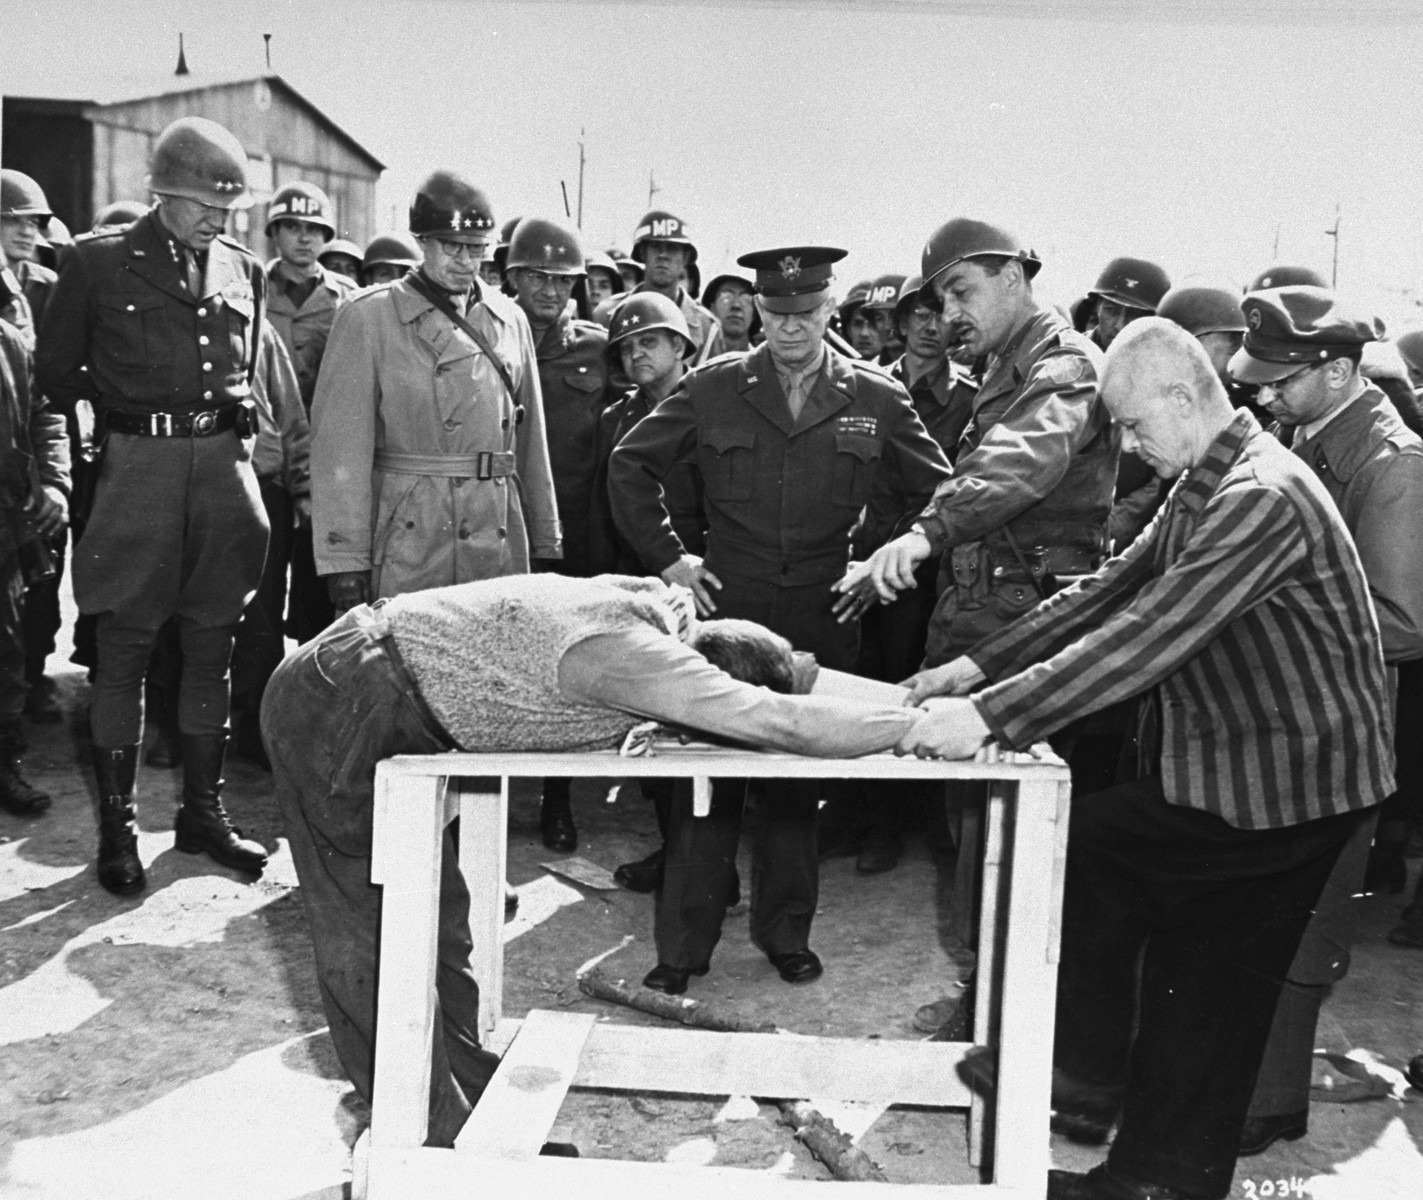 "Survivors of the Ohrdruf concentration camp demonstrate torture methods used in the camp to top ranking American generals.  Among those pictured are General Dwight Eisenhower, (center), General Omar Bradley (second from the left), and General George S. Patton (left). Jules Grad (far right), pool correspondent for the ""Stars and Stripes,"" is taking notes.  The mustached soldier who is pointing at the demonstrated torture victim is Alois J. Liethen of Appleton, WI, who served as the interpreter for the tour of Ohrdruf.   Original caption reads: ""General Dwight D. Eisenhower, supreme allied commander, watches grimly while occupants of the German Concentration Camp at Gotha demonstrate how they were tortured by the Nazi sadists operating the camp.  General ""Ike"" visited the camp during a tour of the Third Army Front.  General Omar N. Bradley, 12th Army Group CG, and Lt. General George S. Patton, 3rd Army CG, are at the supreme commander's right.""  Original caption from donated photograph reads:  ""General of the Army Dwight D. Eisenhower (center), Supreme Commander-in-Cheif Allied Expeditionary Force, watches grimly as liberated slave workers of the concentration camp at Ohrdnuf, Germany, demonstrated how they were tortured by their guards.  Lieutenant General George S. Patton, Jr., Commander of the Third U.S. Army, stands at left and next to him is General Omar N. Bradley, Commander of teh 12th Army Group."""